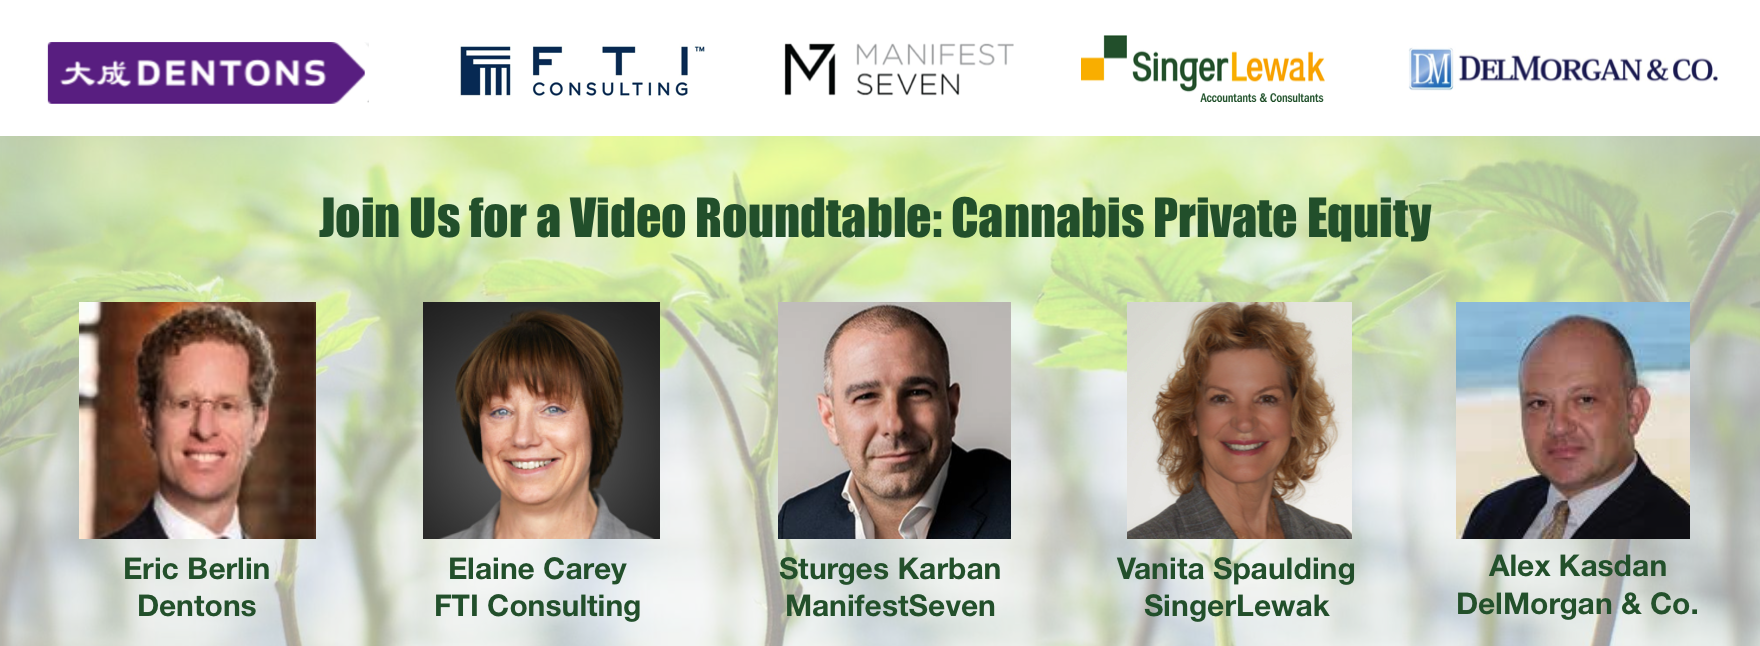 Cannabis Private Equity Panel on Expert Webcast